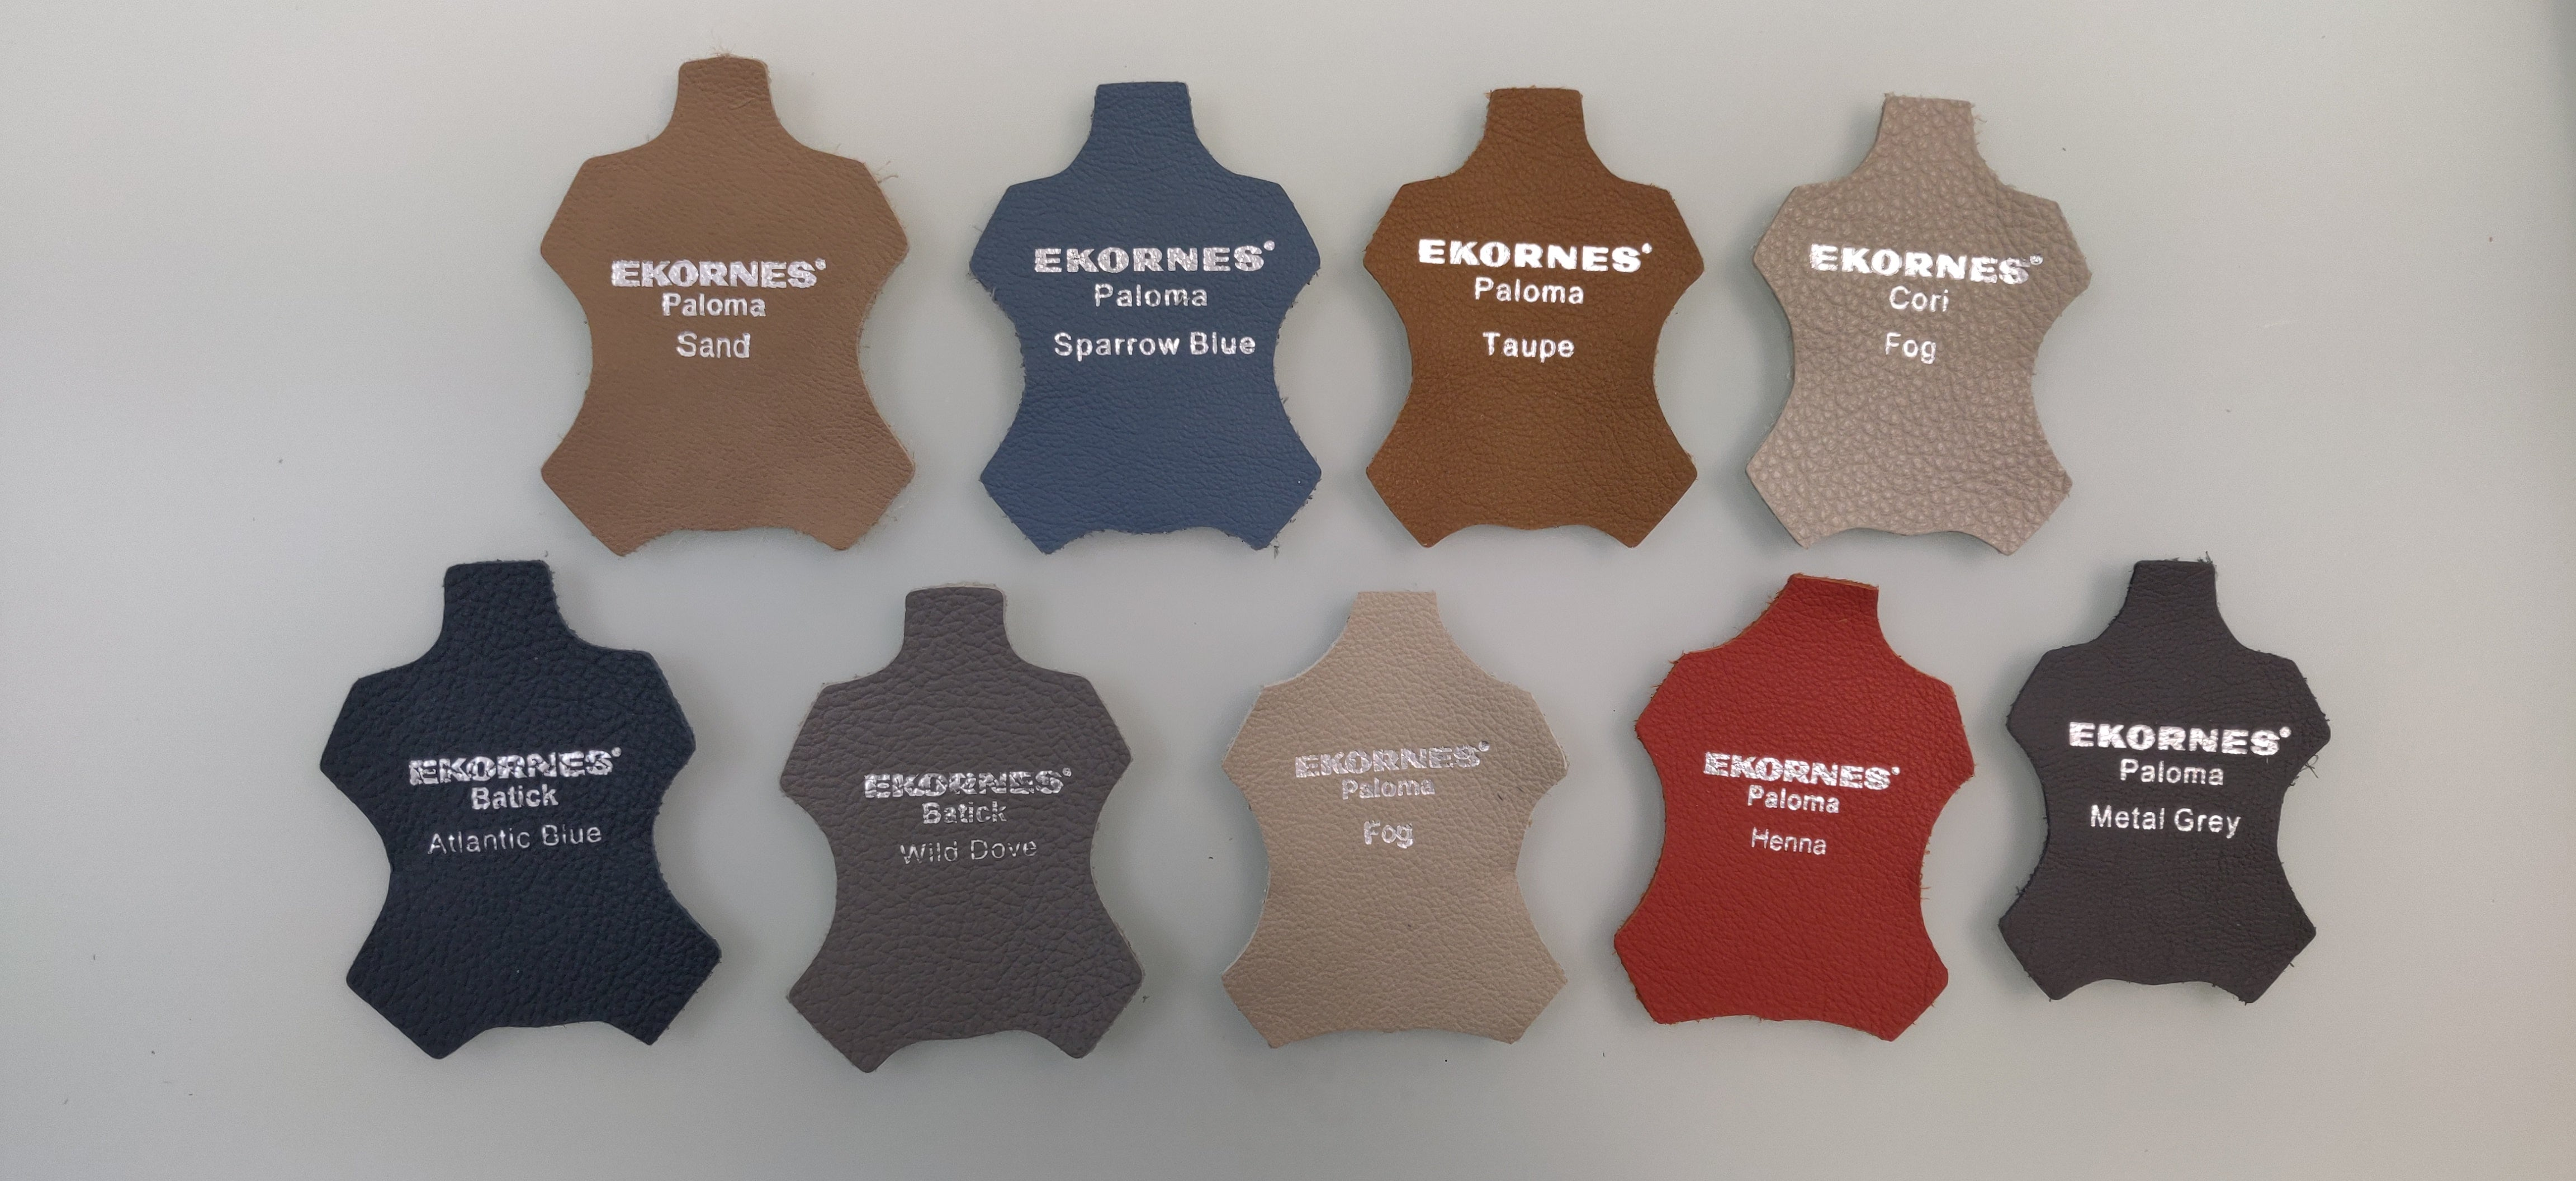 Stressless by Ekornes leather samples swatches available to mail to customers